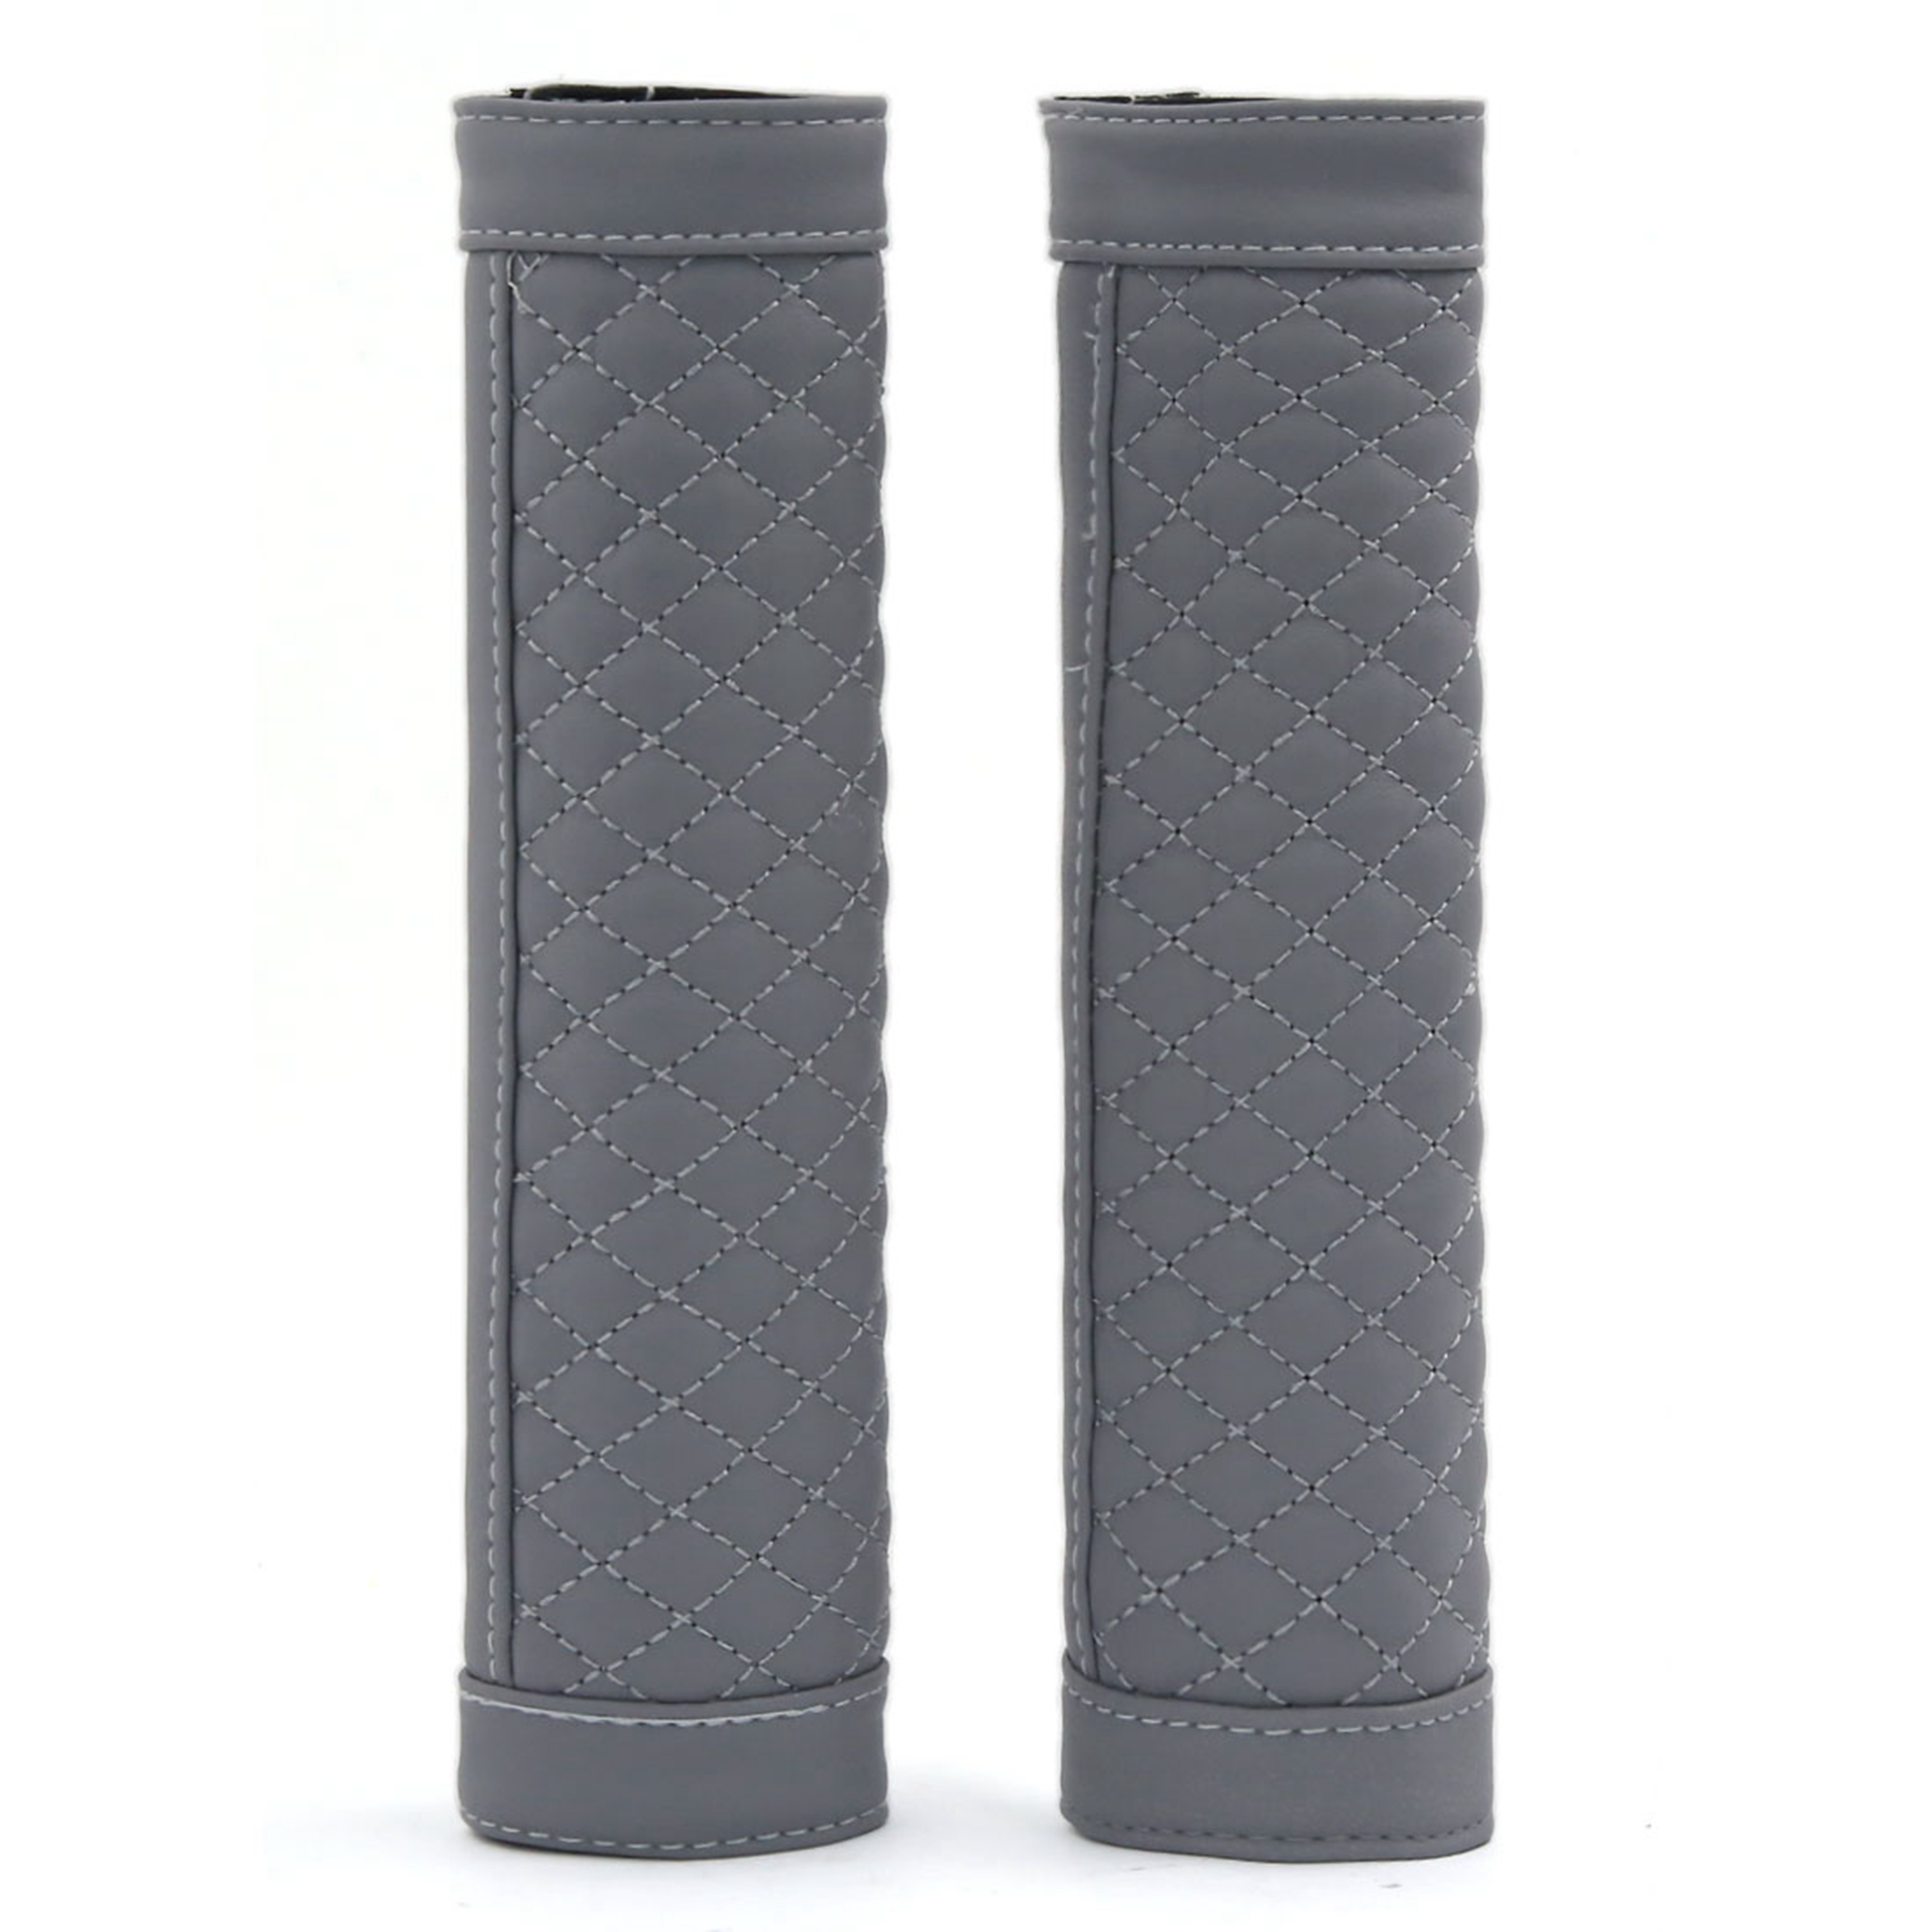 2pcs Hook Loop Fastener Car Seatbelt Cover Shoulder Comfortable Pad Cushion Gray